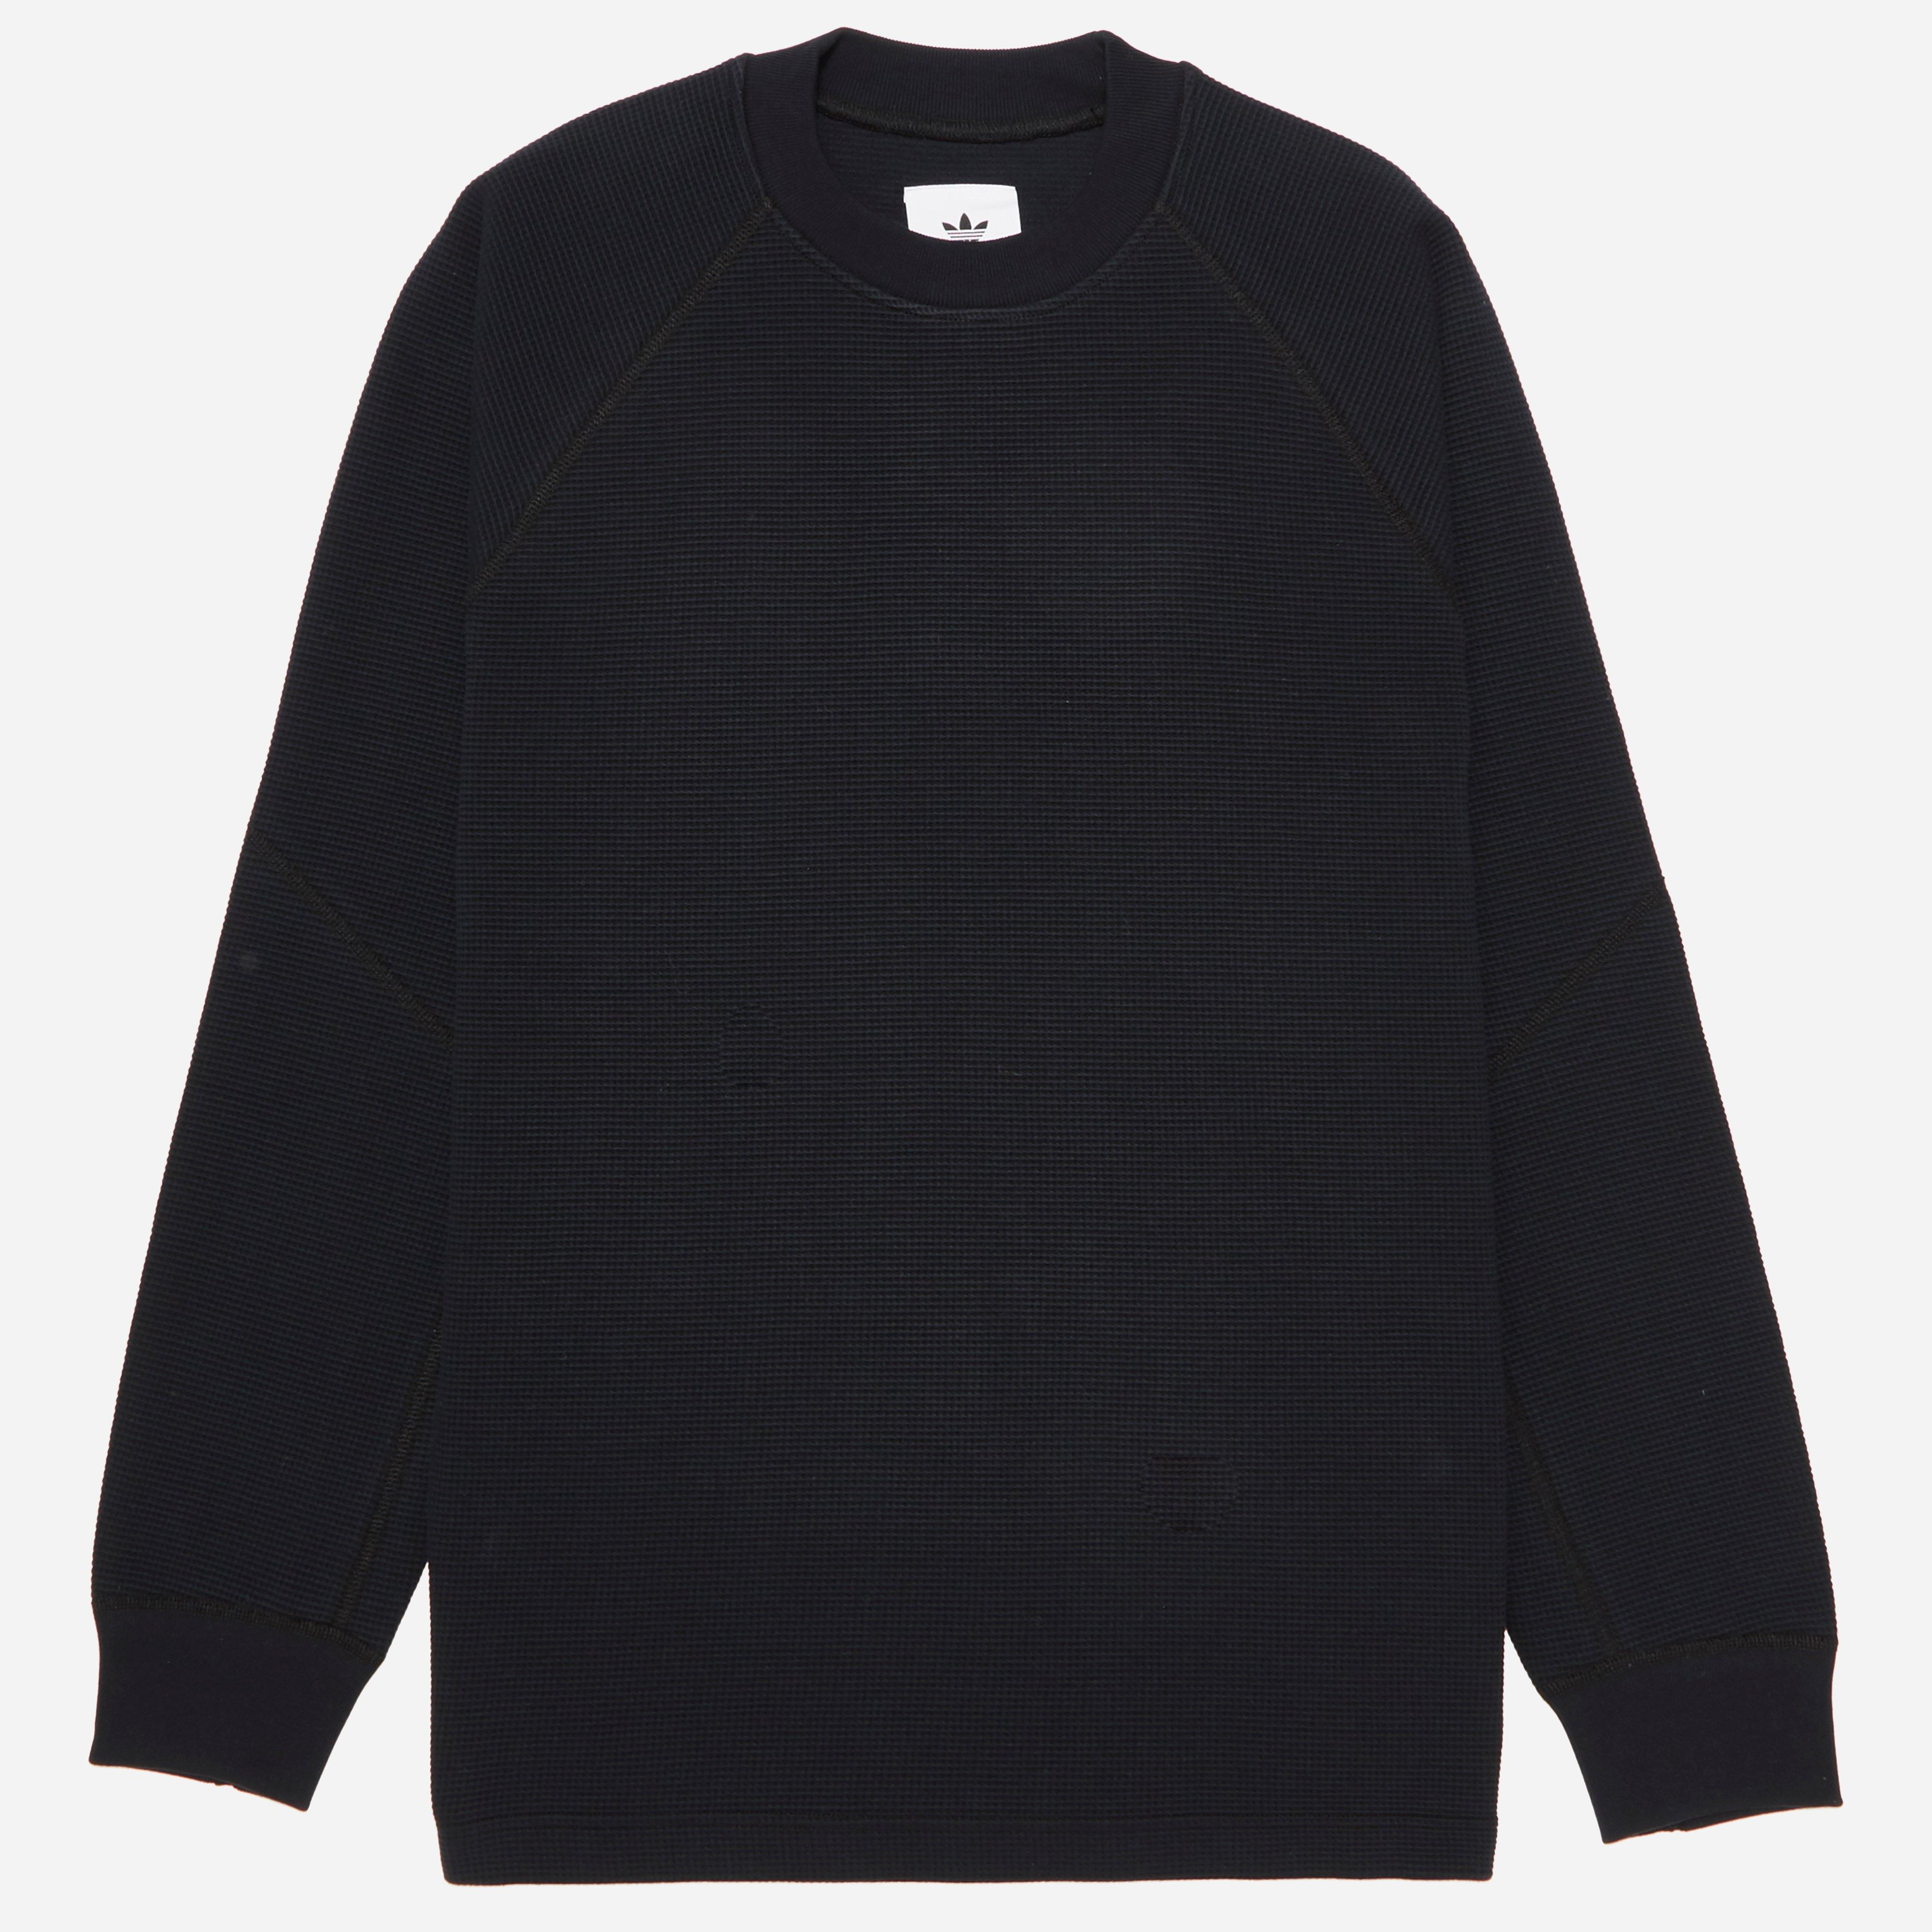 adidas Originals X Wings + Horns Double Waffle Knit Fisherman Crew Sweatshirt